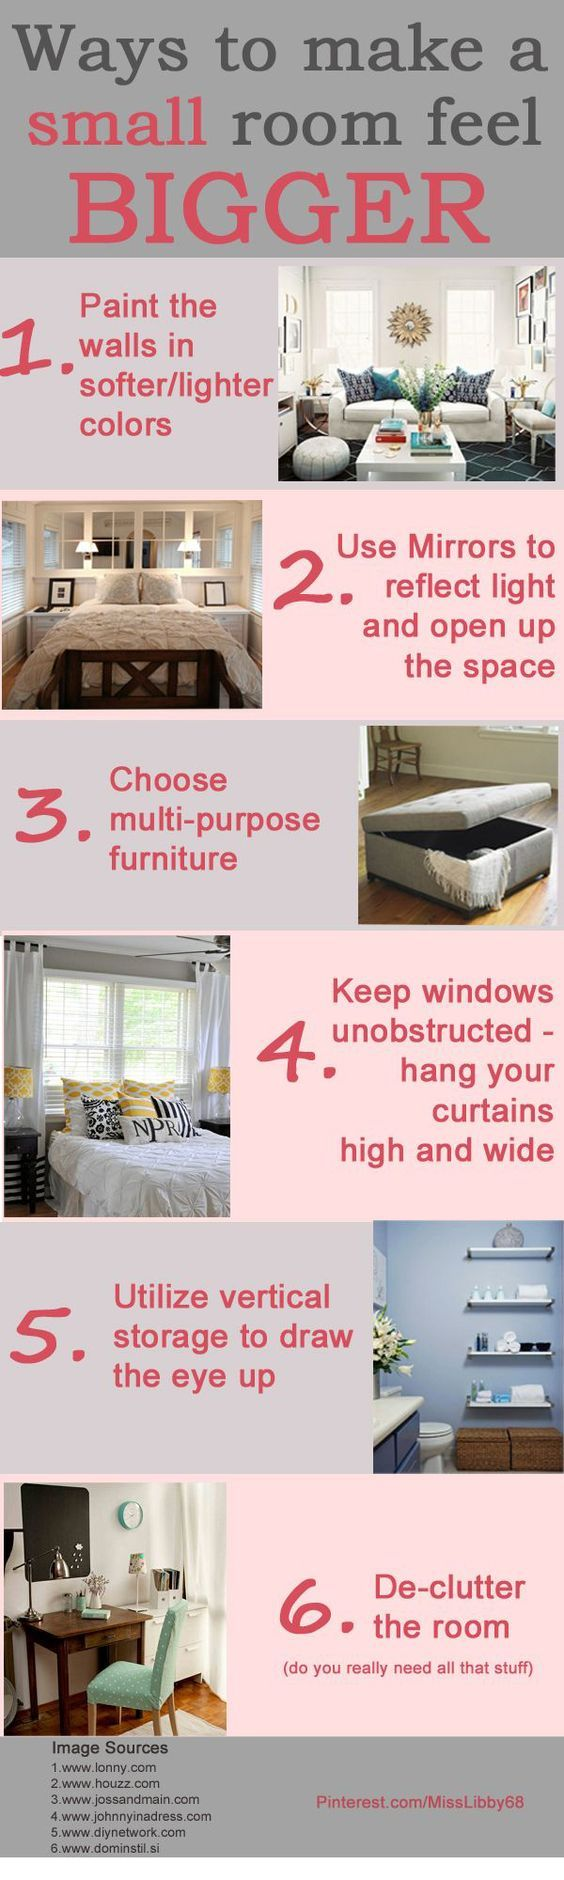 20 Bedroom Organization Tips To Make The Most Of A Small Space | Holiday  Break, Sick And Drawers